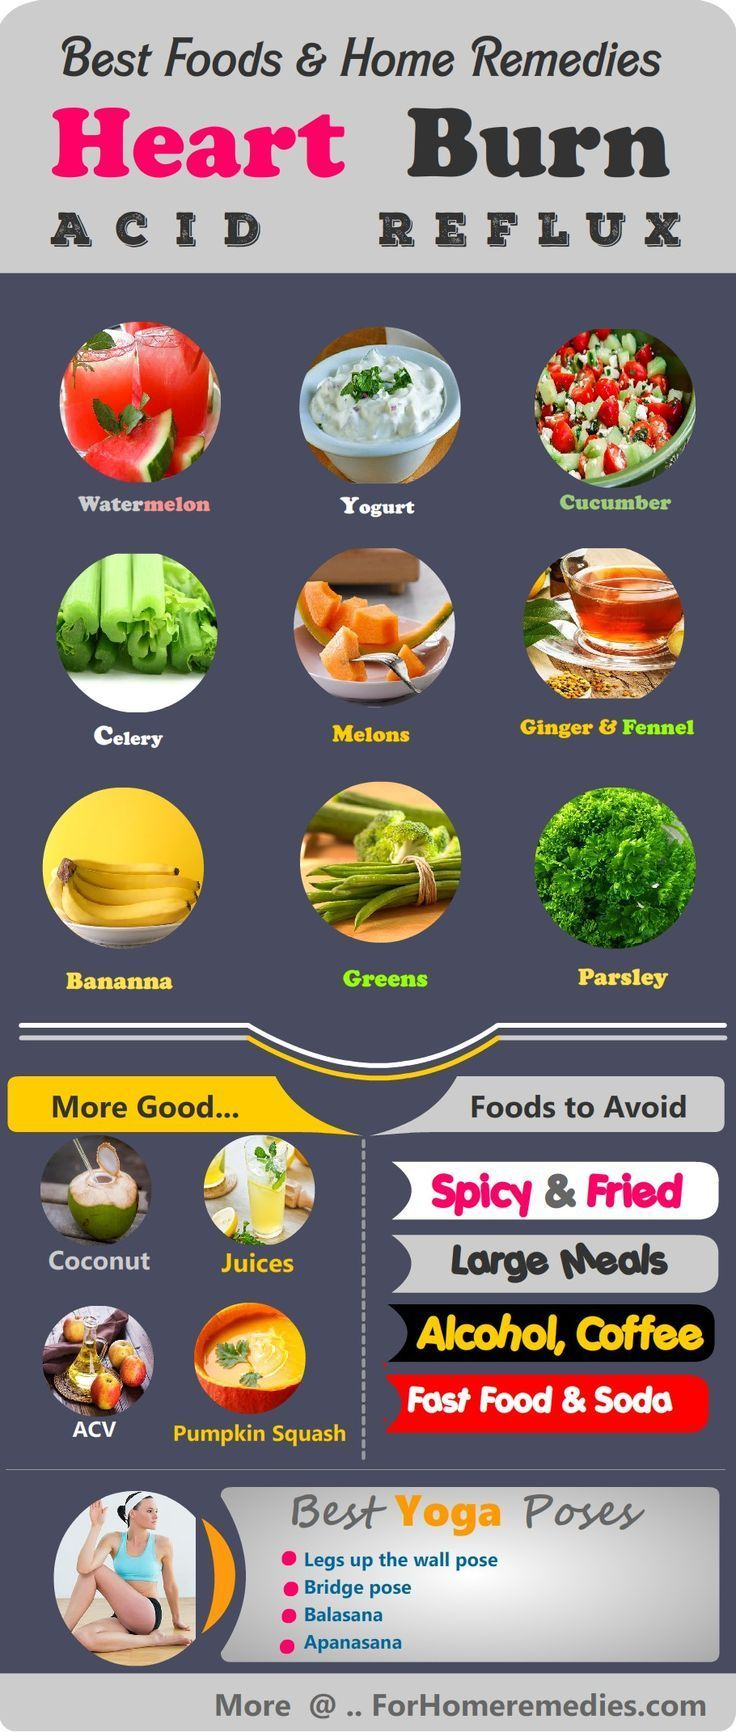 best foods and home remedies for heart burn- foods to avoid for gerd